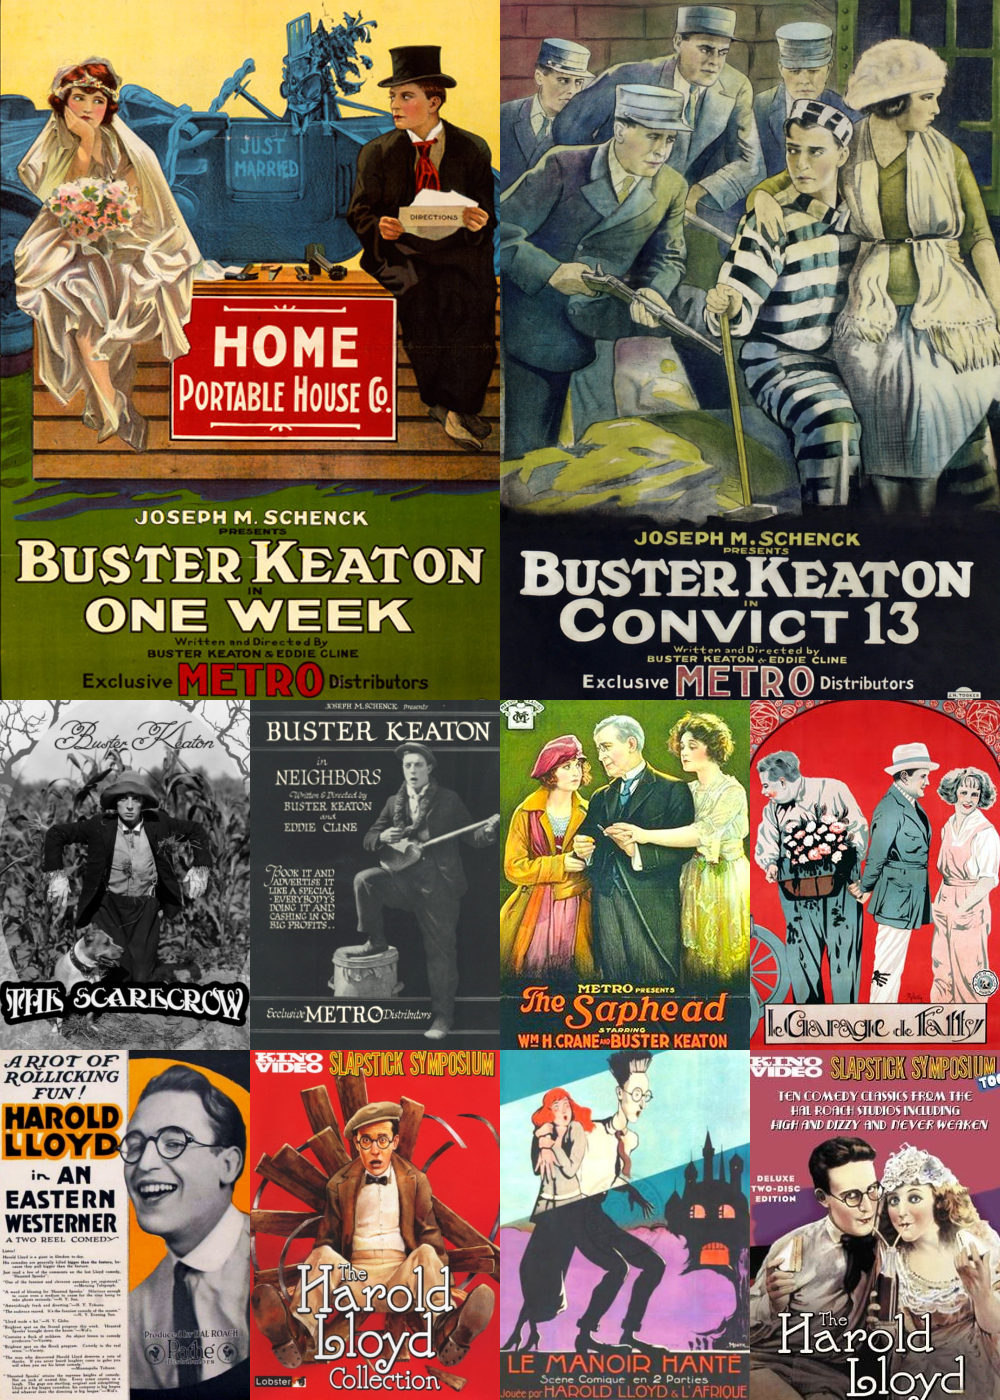 Top 10 Comedy Movies 1920